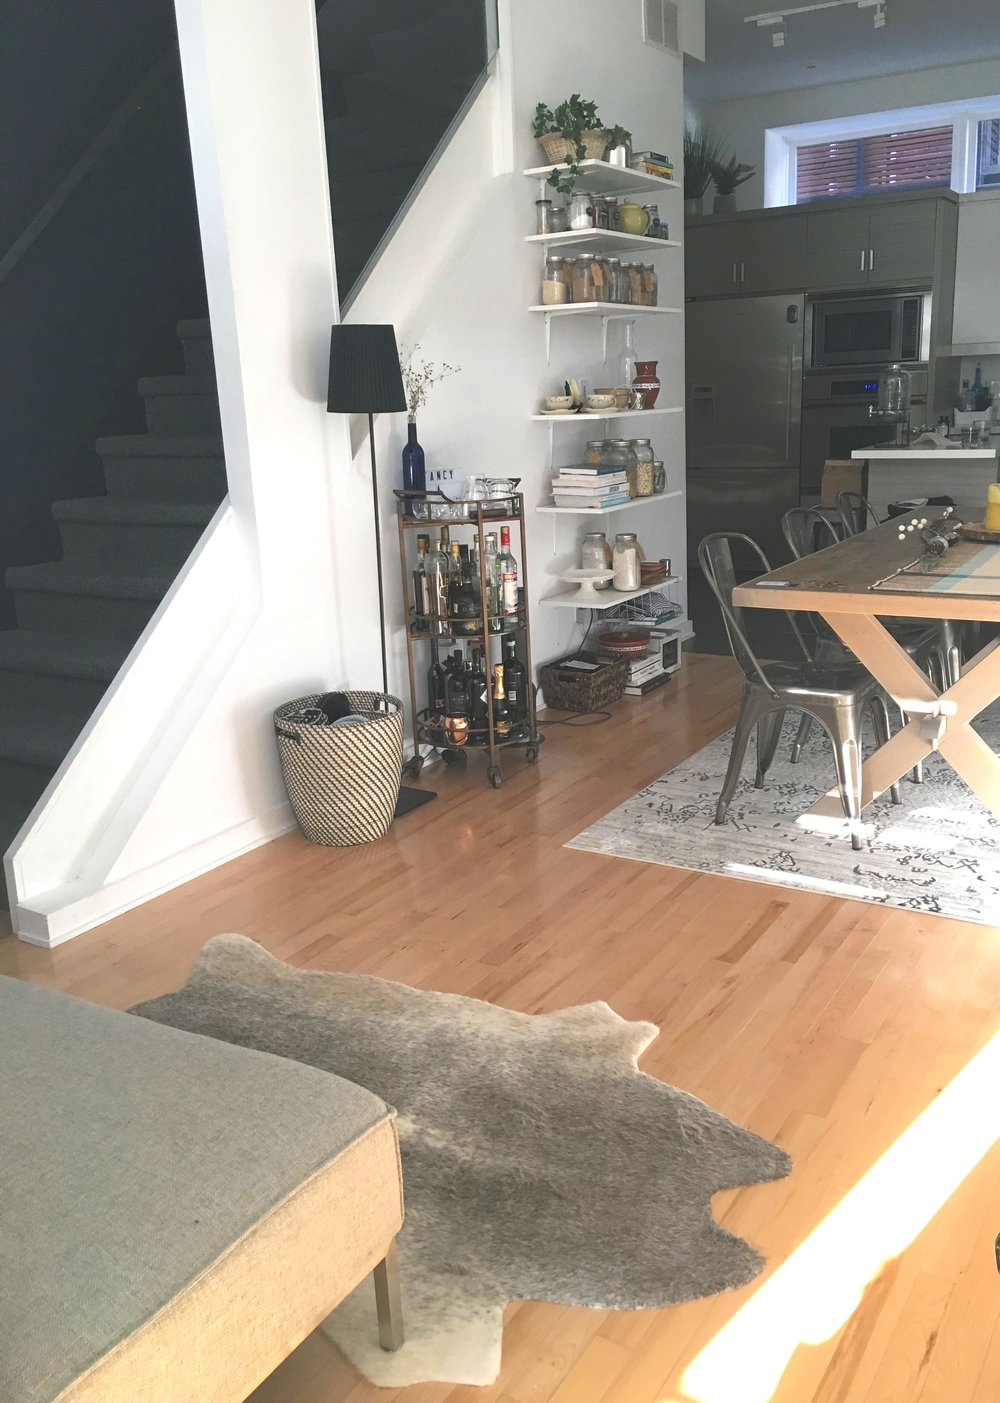 The main floor of my home after decluttering and redecorating!